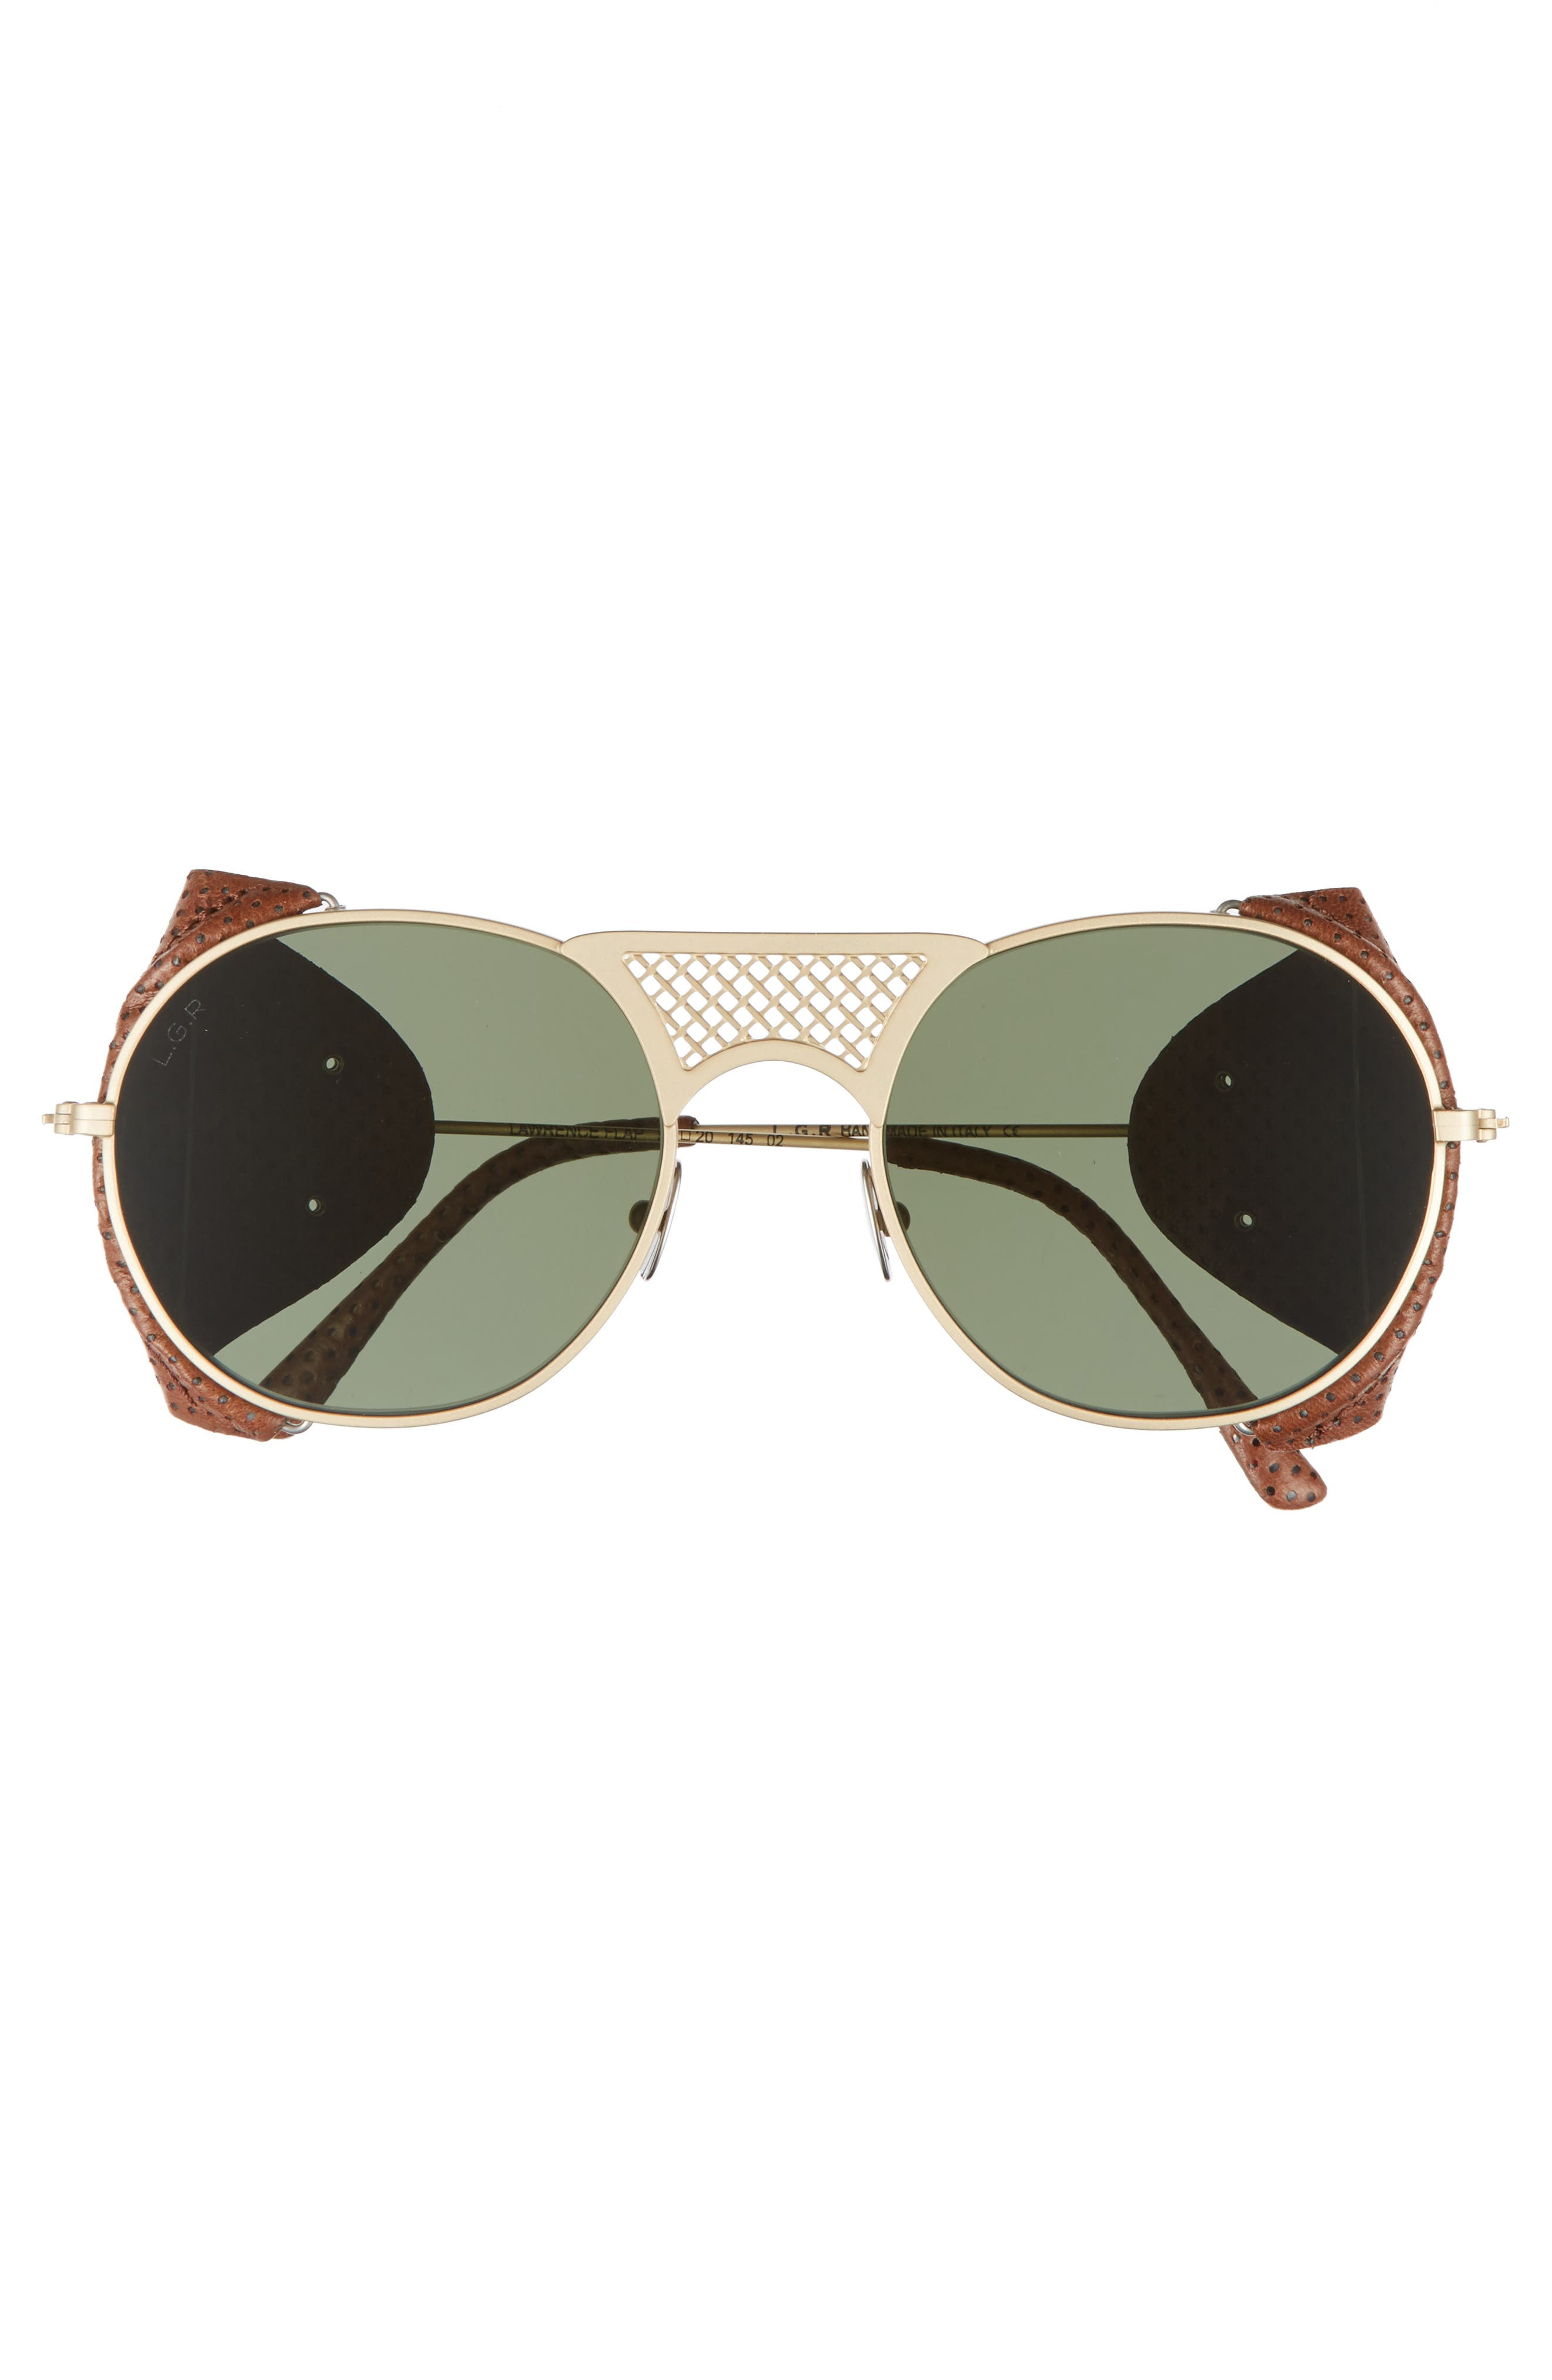 Lawrence 54mm Sunglasses,                             Alternate thumbnail 4, color,